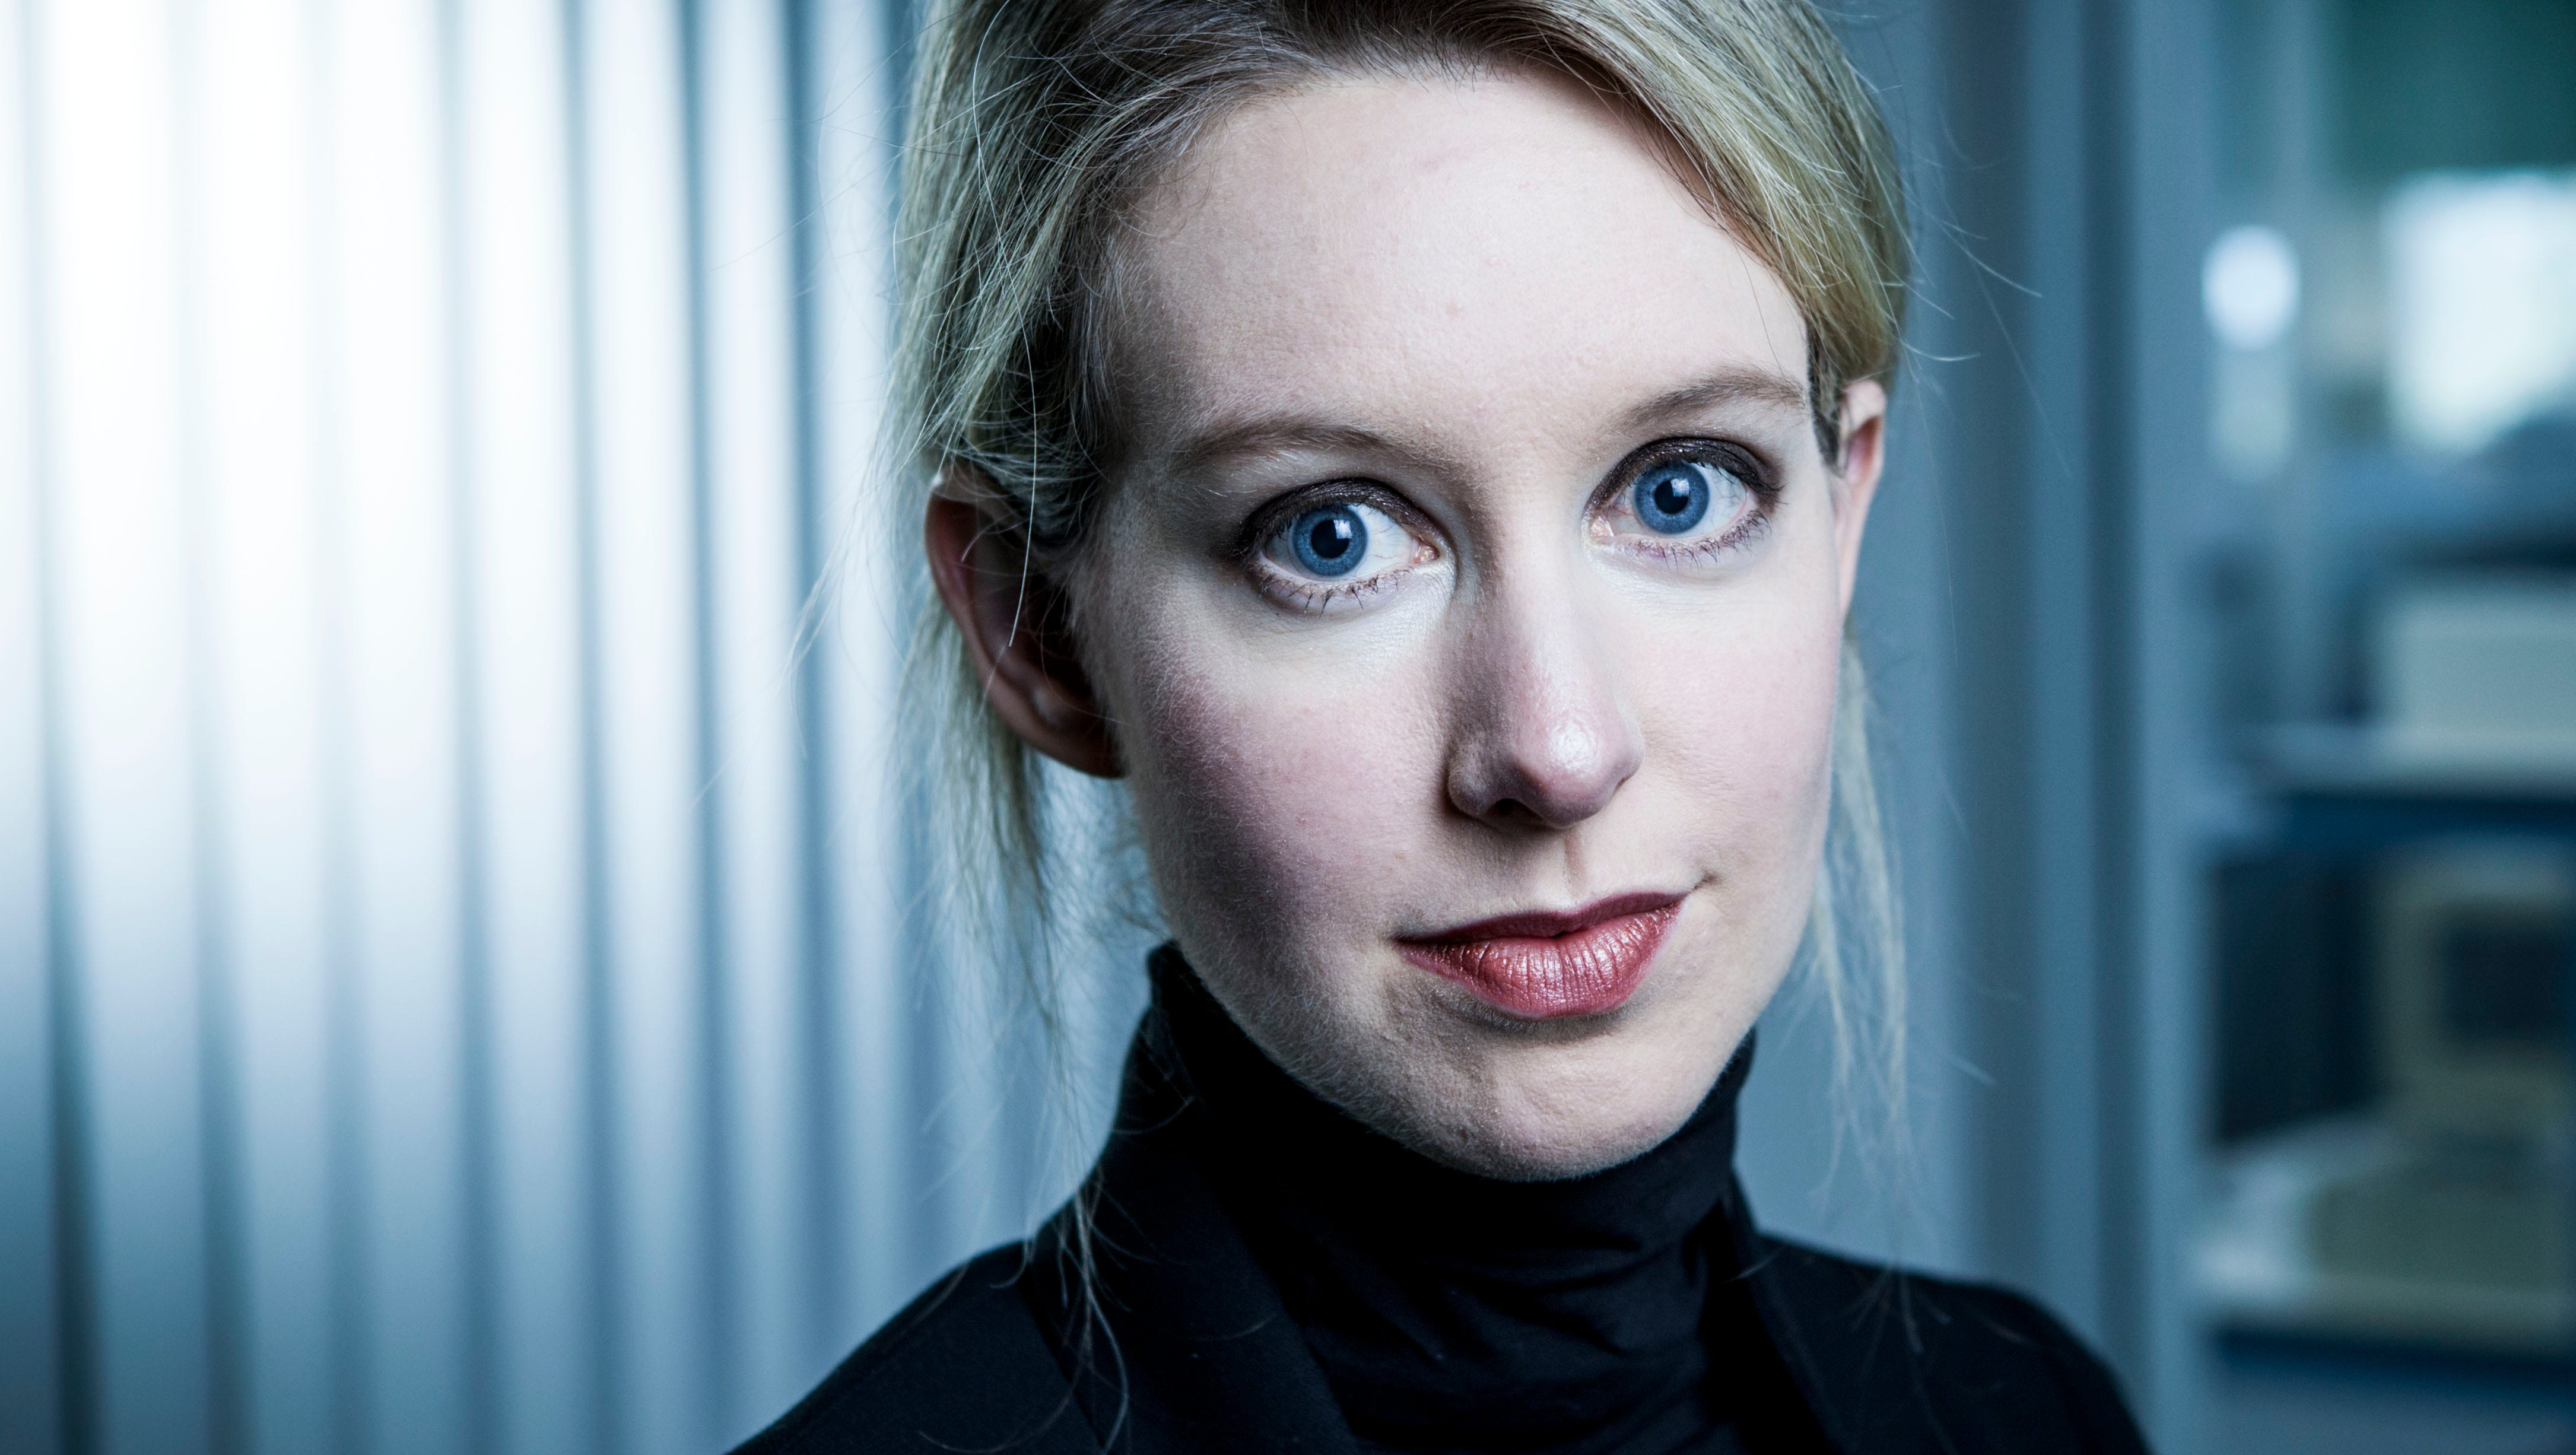 Theranos founder Elizabeth Holmes charged with criminal fraud